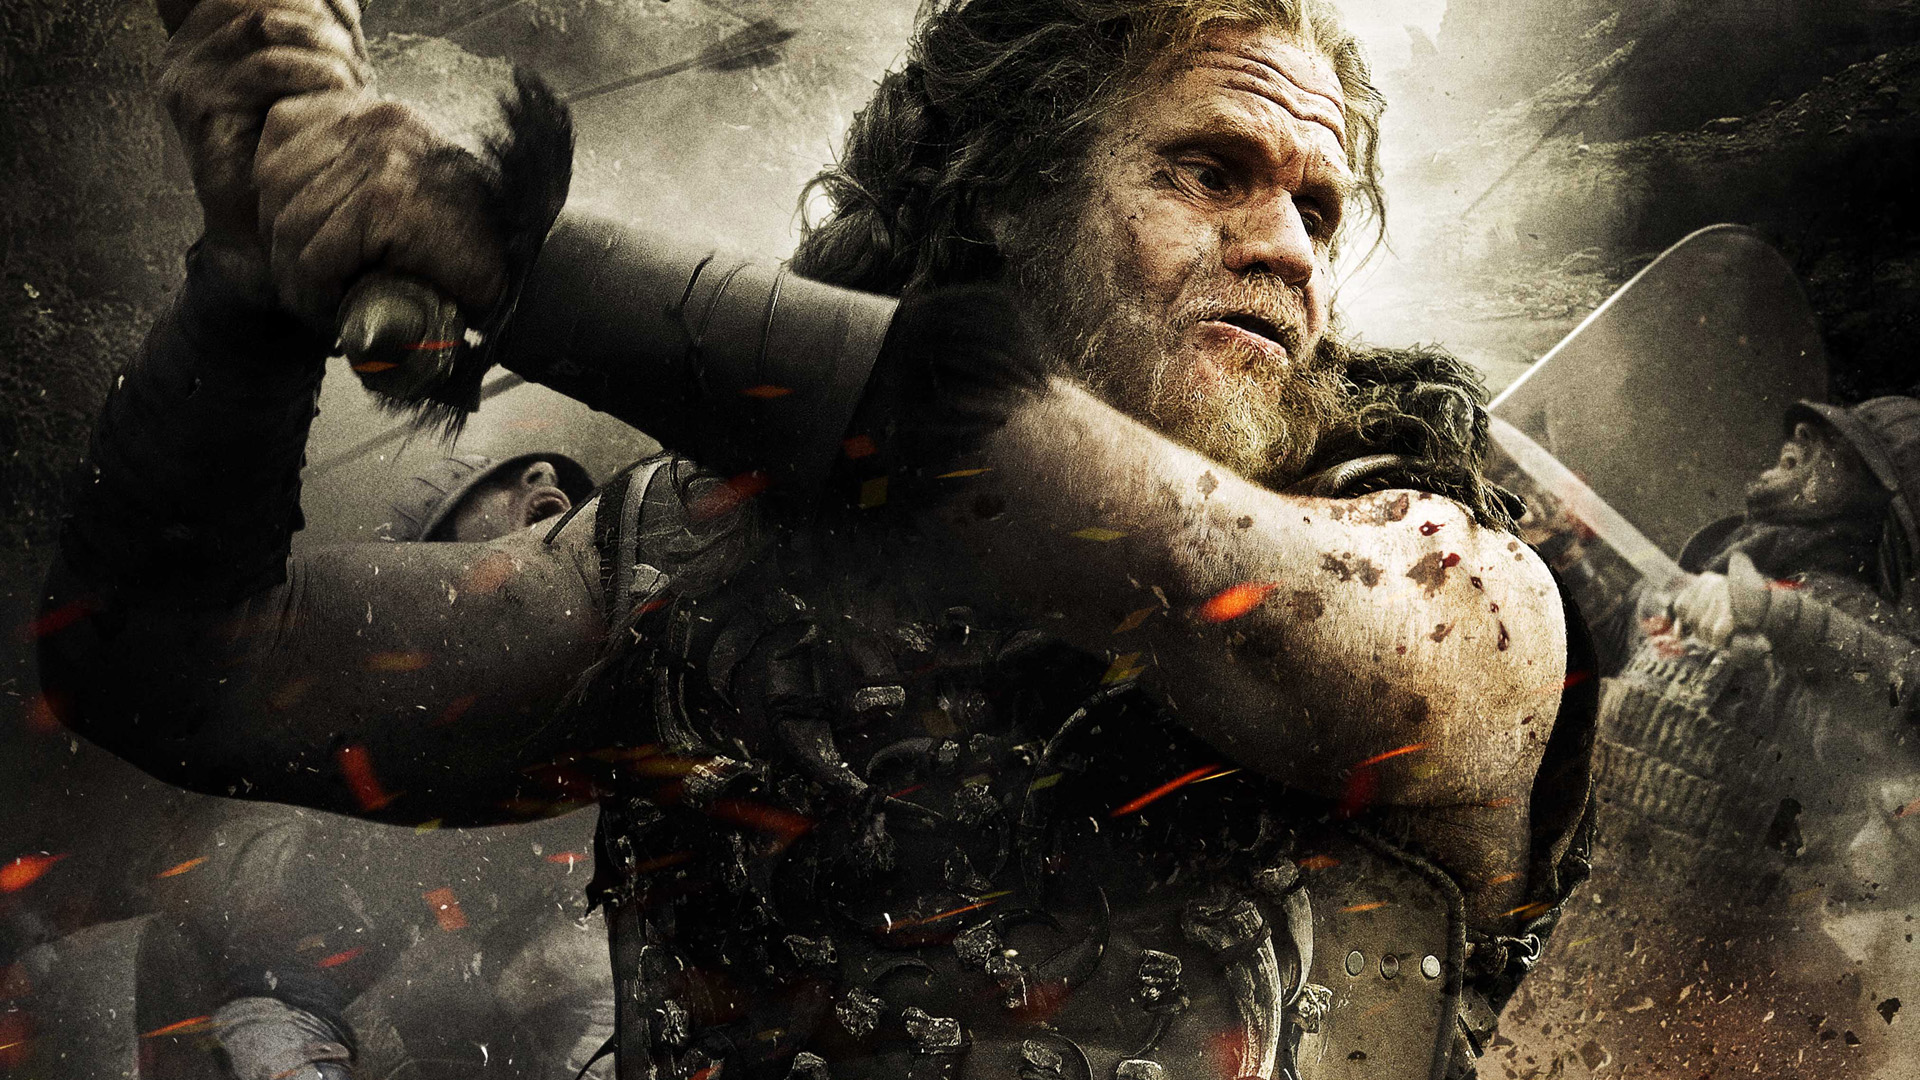 CONAN THE BARBARIAN fantasy g wallpaper | 1920x1080 ...